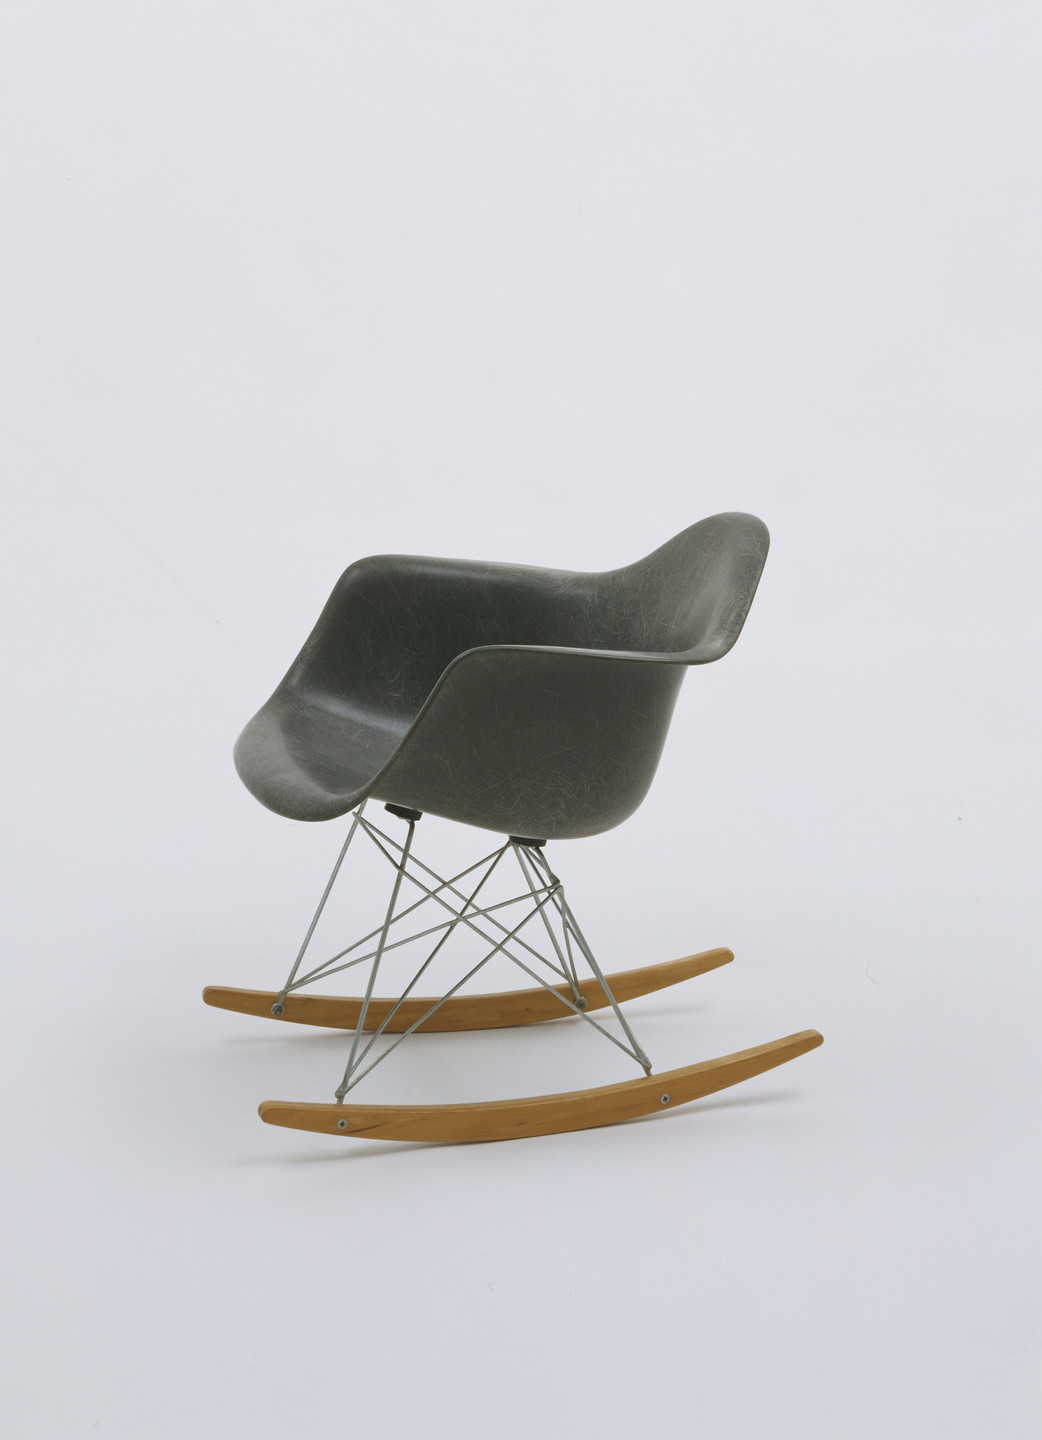 Charles Eames, Ray Eames. Rocking Armchair (model RAR). 1948-50